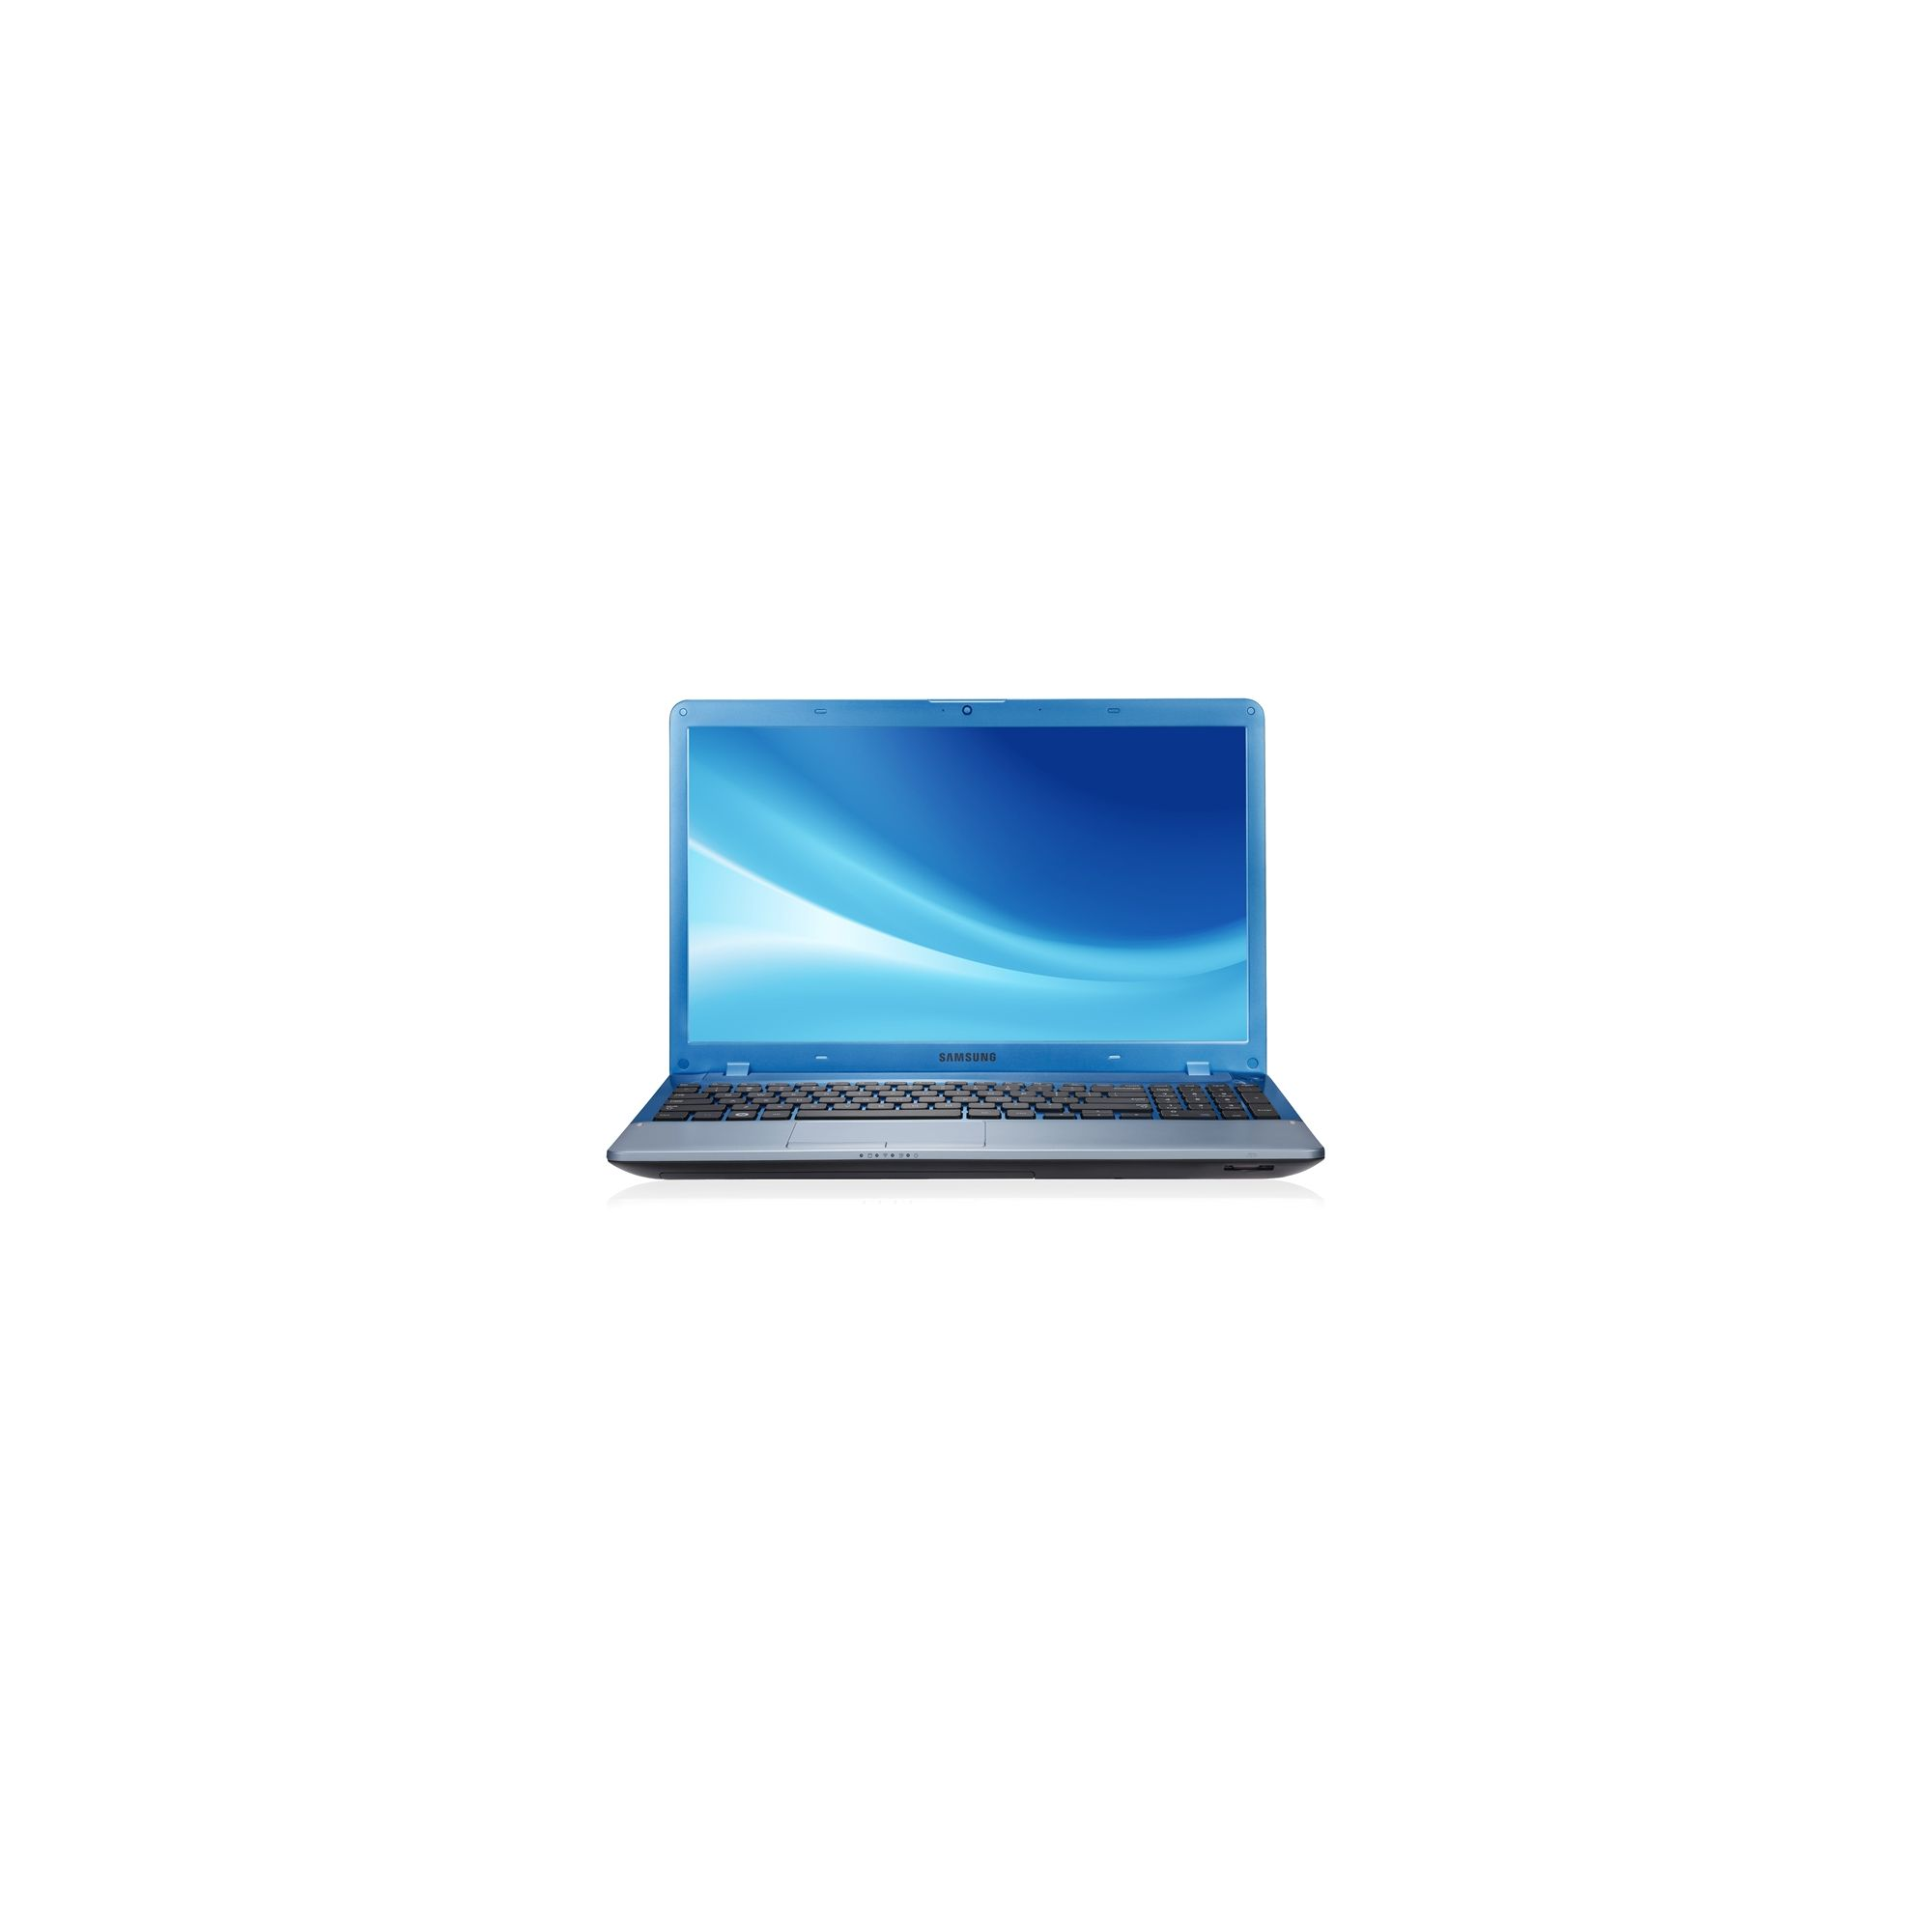 Samsung Series 3 350V (15.6 inch) Notebook Core i3 (3110M) 2.4GHz 6GB 750GB SuperMulti DL WLAN BT Webcam Windows 8 64-bit (HD Graphics 4000) Blue at Tescos Direct